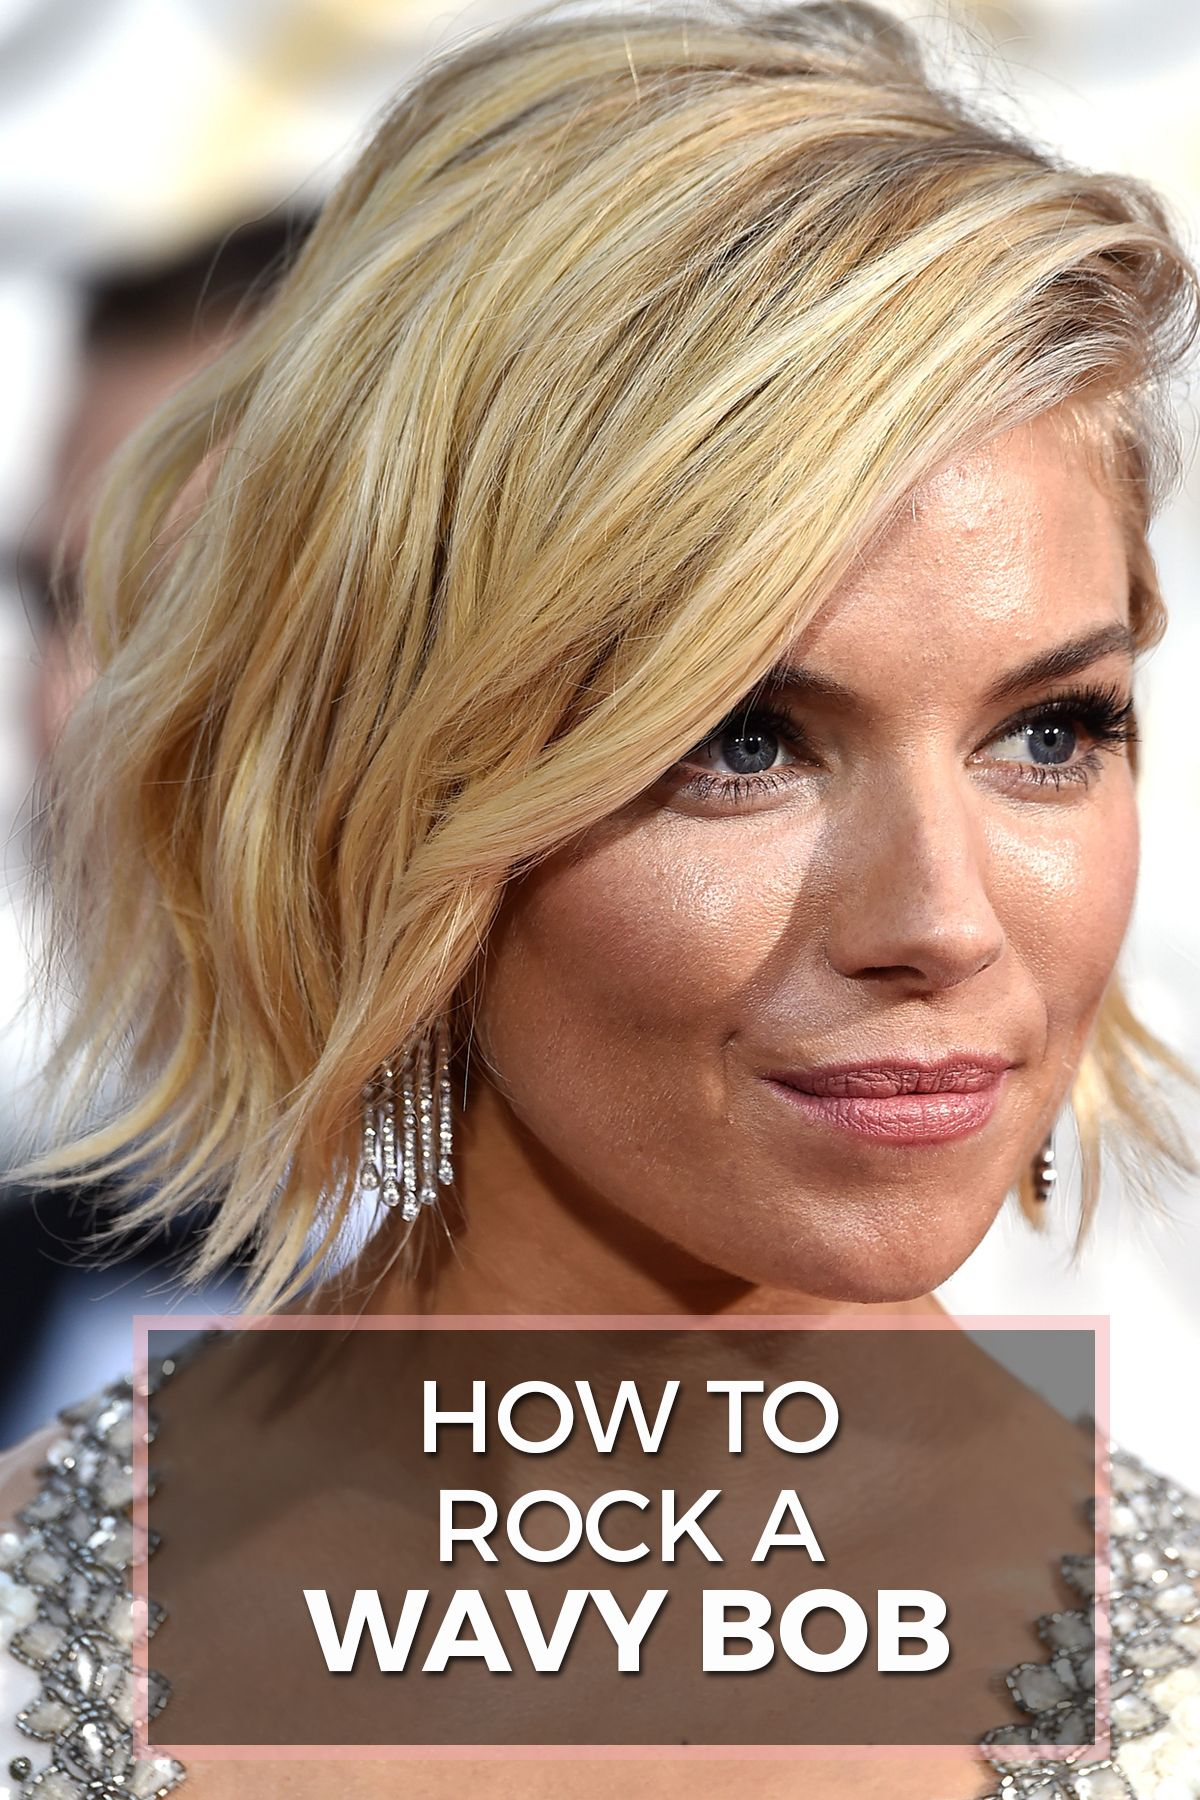 Wavy Bob Hairstyles How To Rock This Summers It Cut My Style